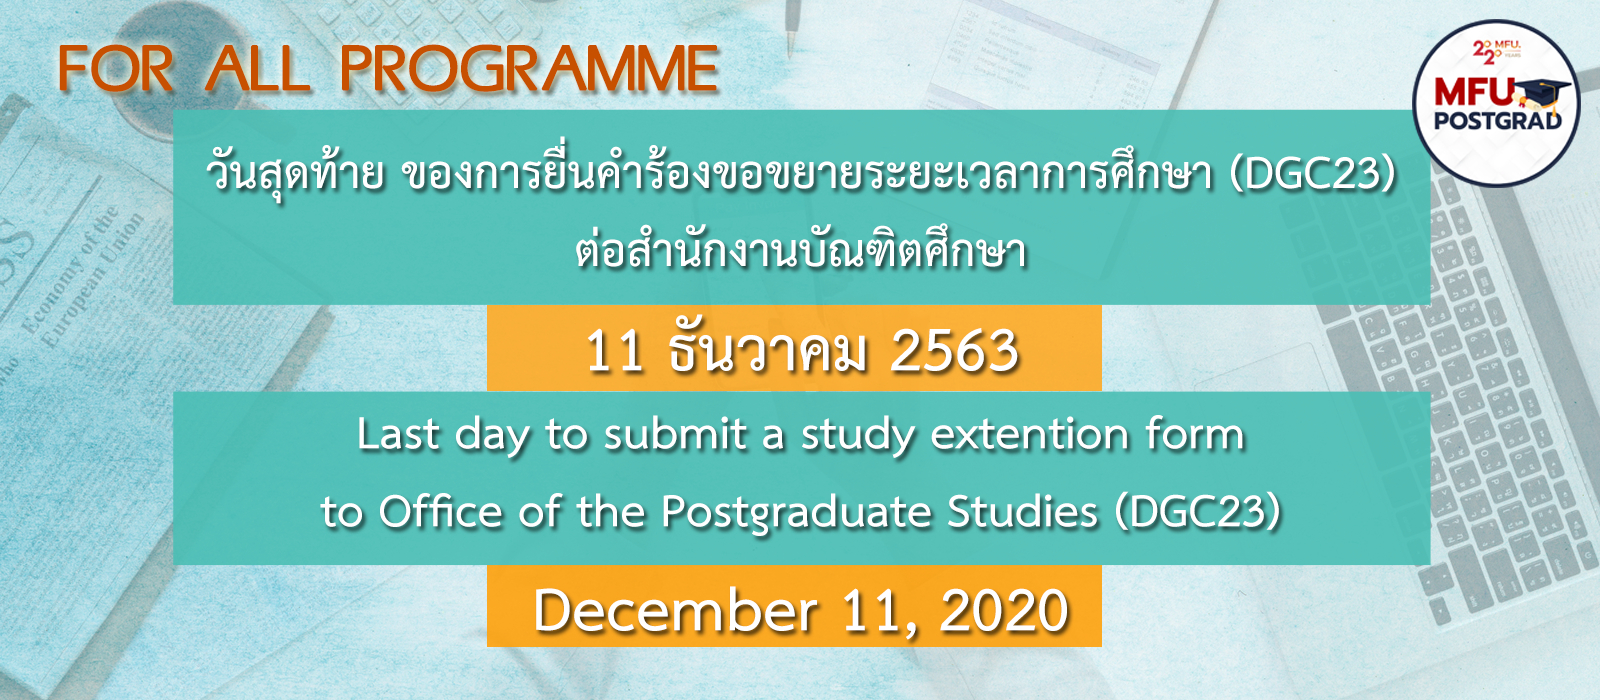 Last day to submit a study extention form (DGC23) 1/2020